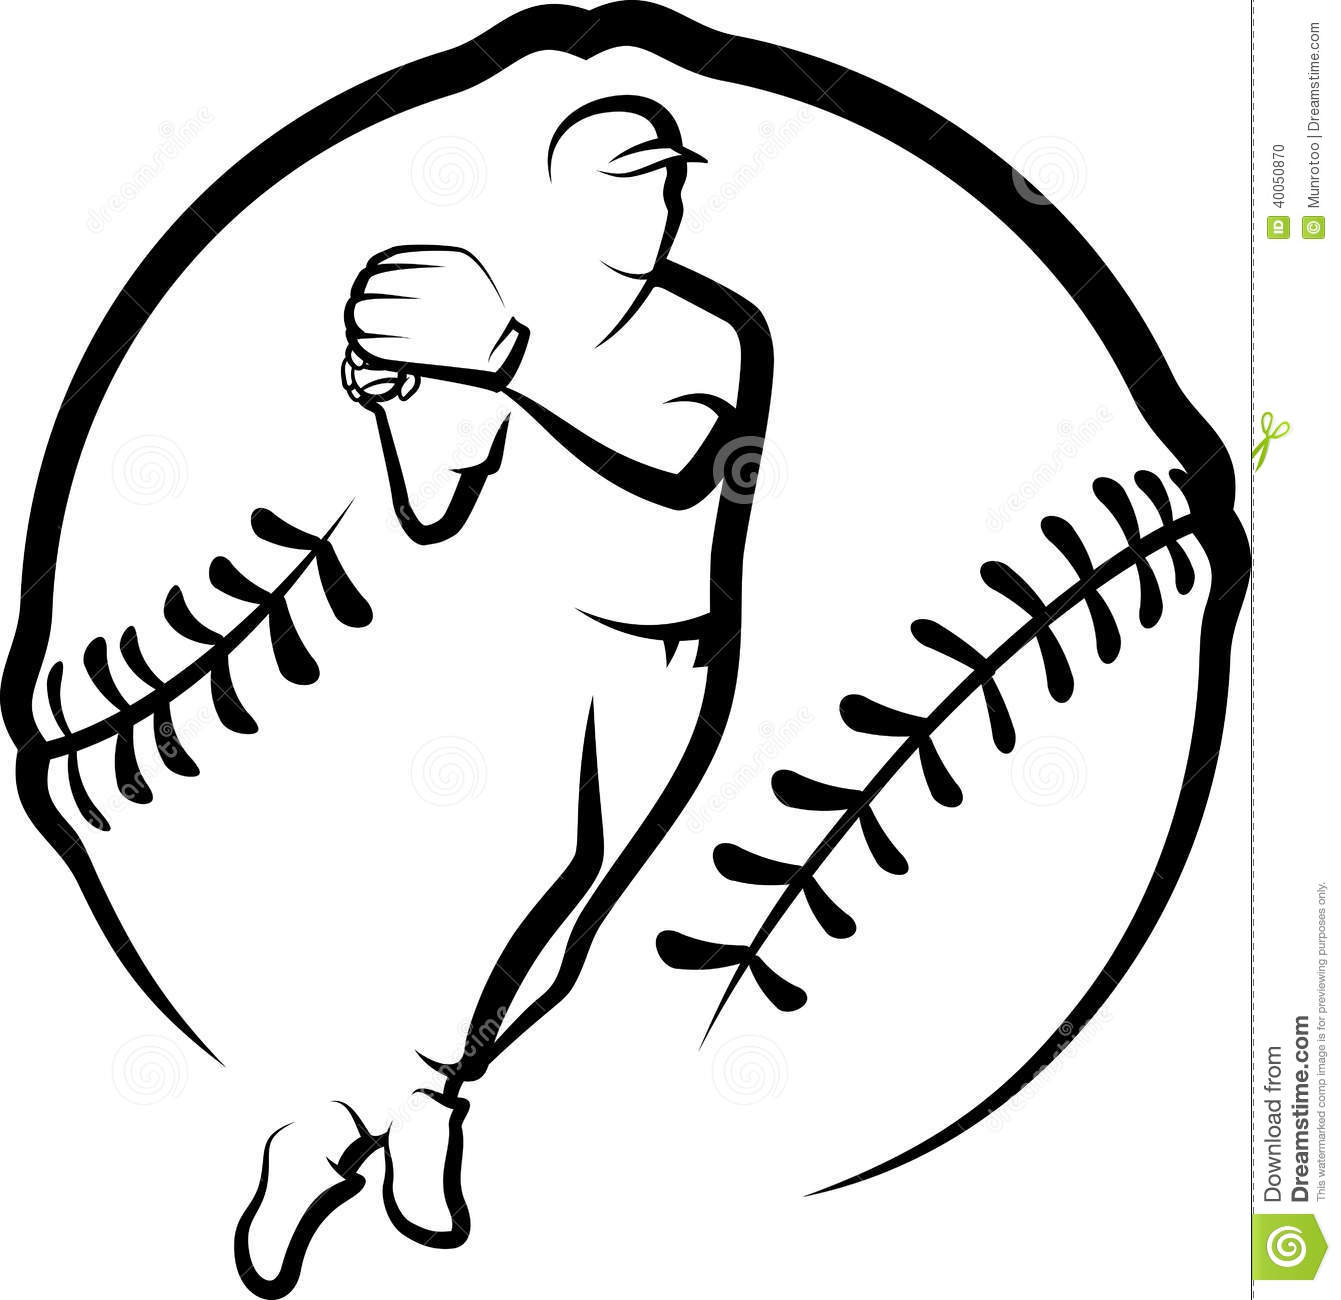 Baseball Player Throwing With Text Amp Stylized Ball Stock